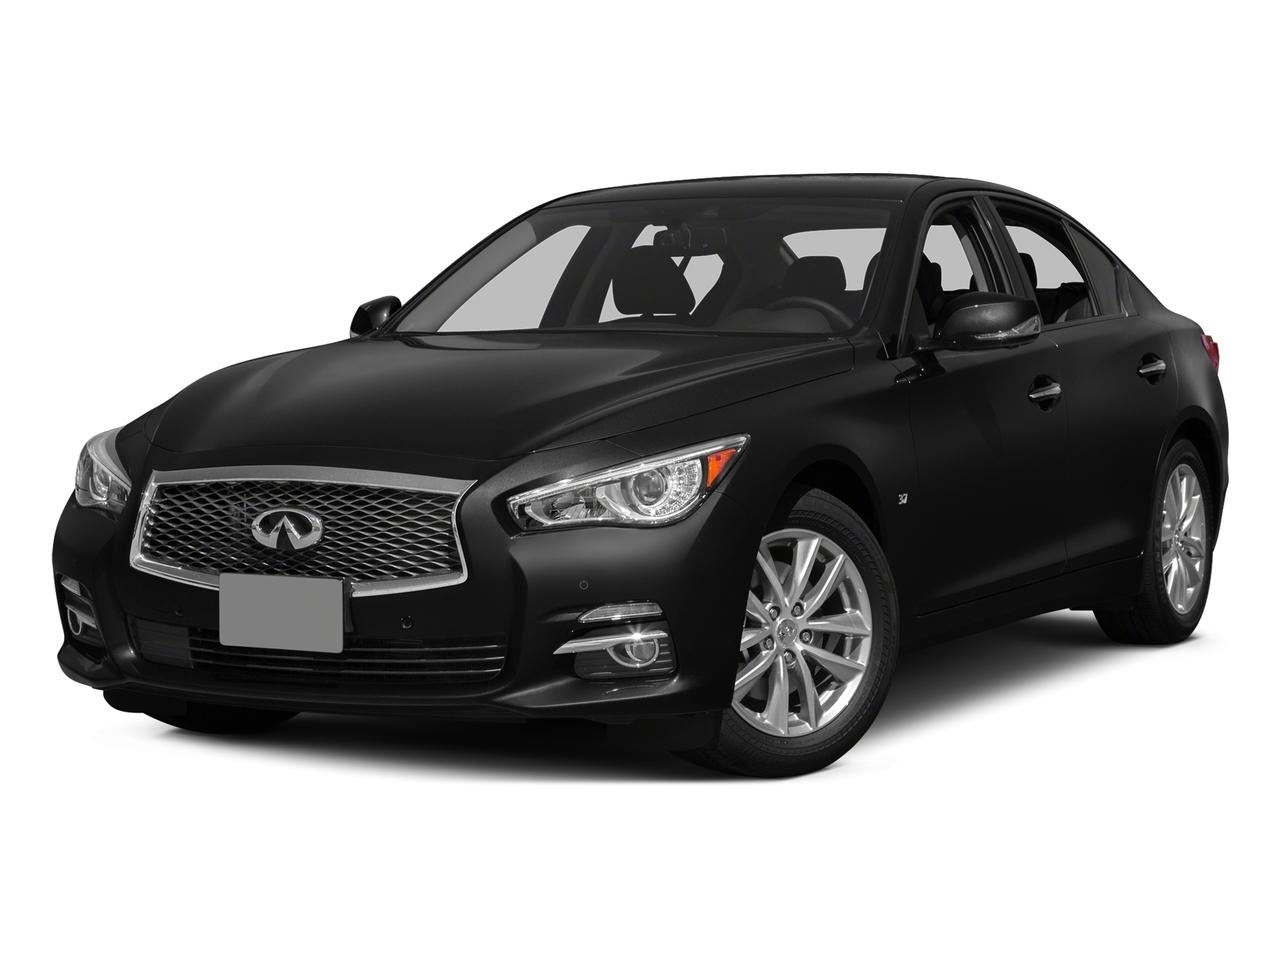 2015 INFINITI Q50 Vehicle Photo in Lafayette, LA 70503